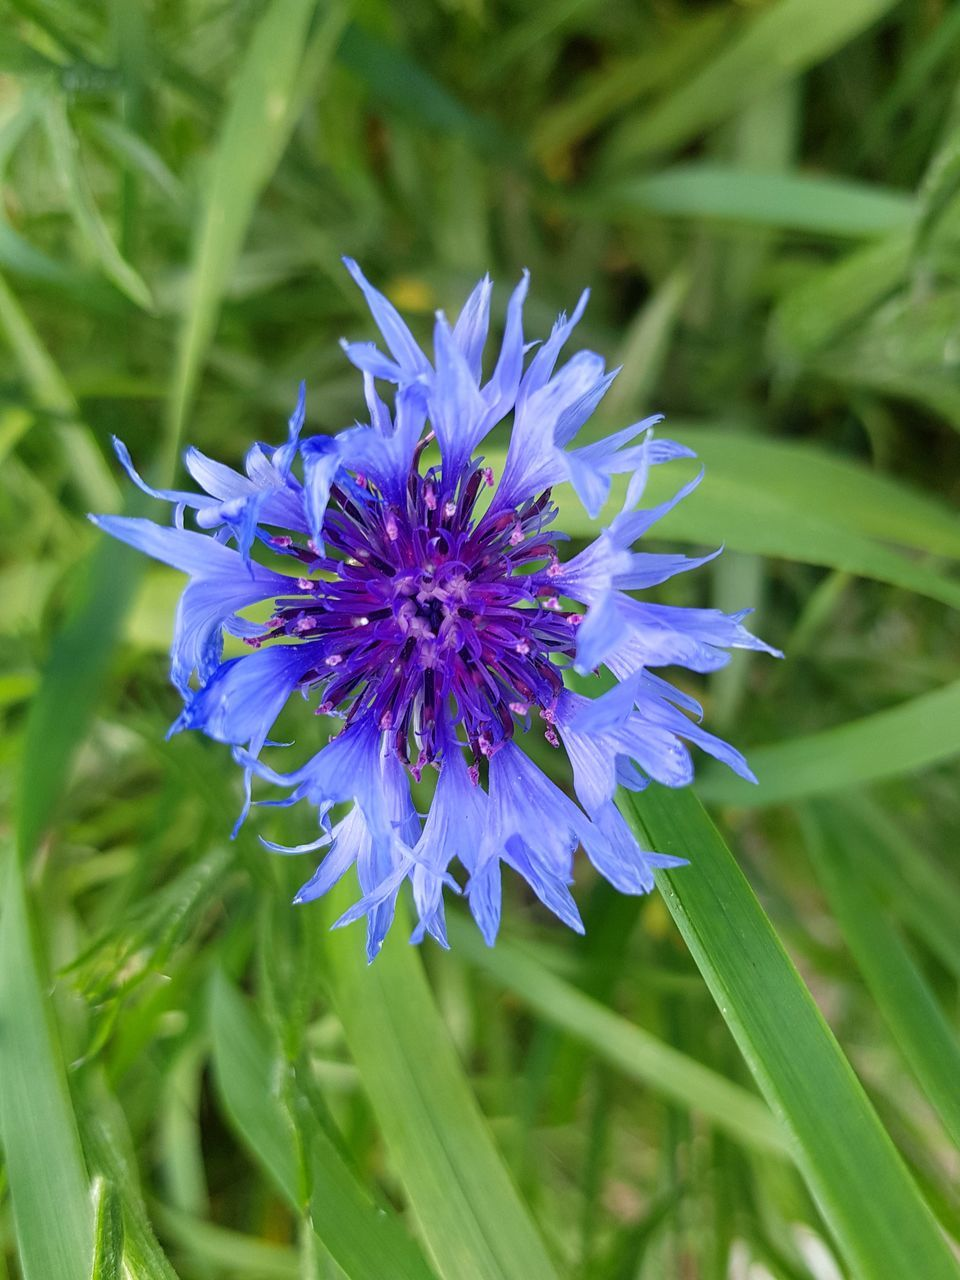 flower, nature, growth, plant, purple, blue, beauty in nature, blooming, fragility, outdoors, no people, freshness, grass, close-up, flower head, day